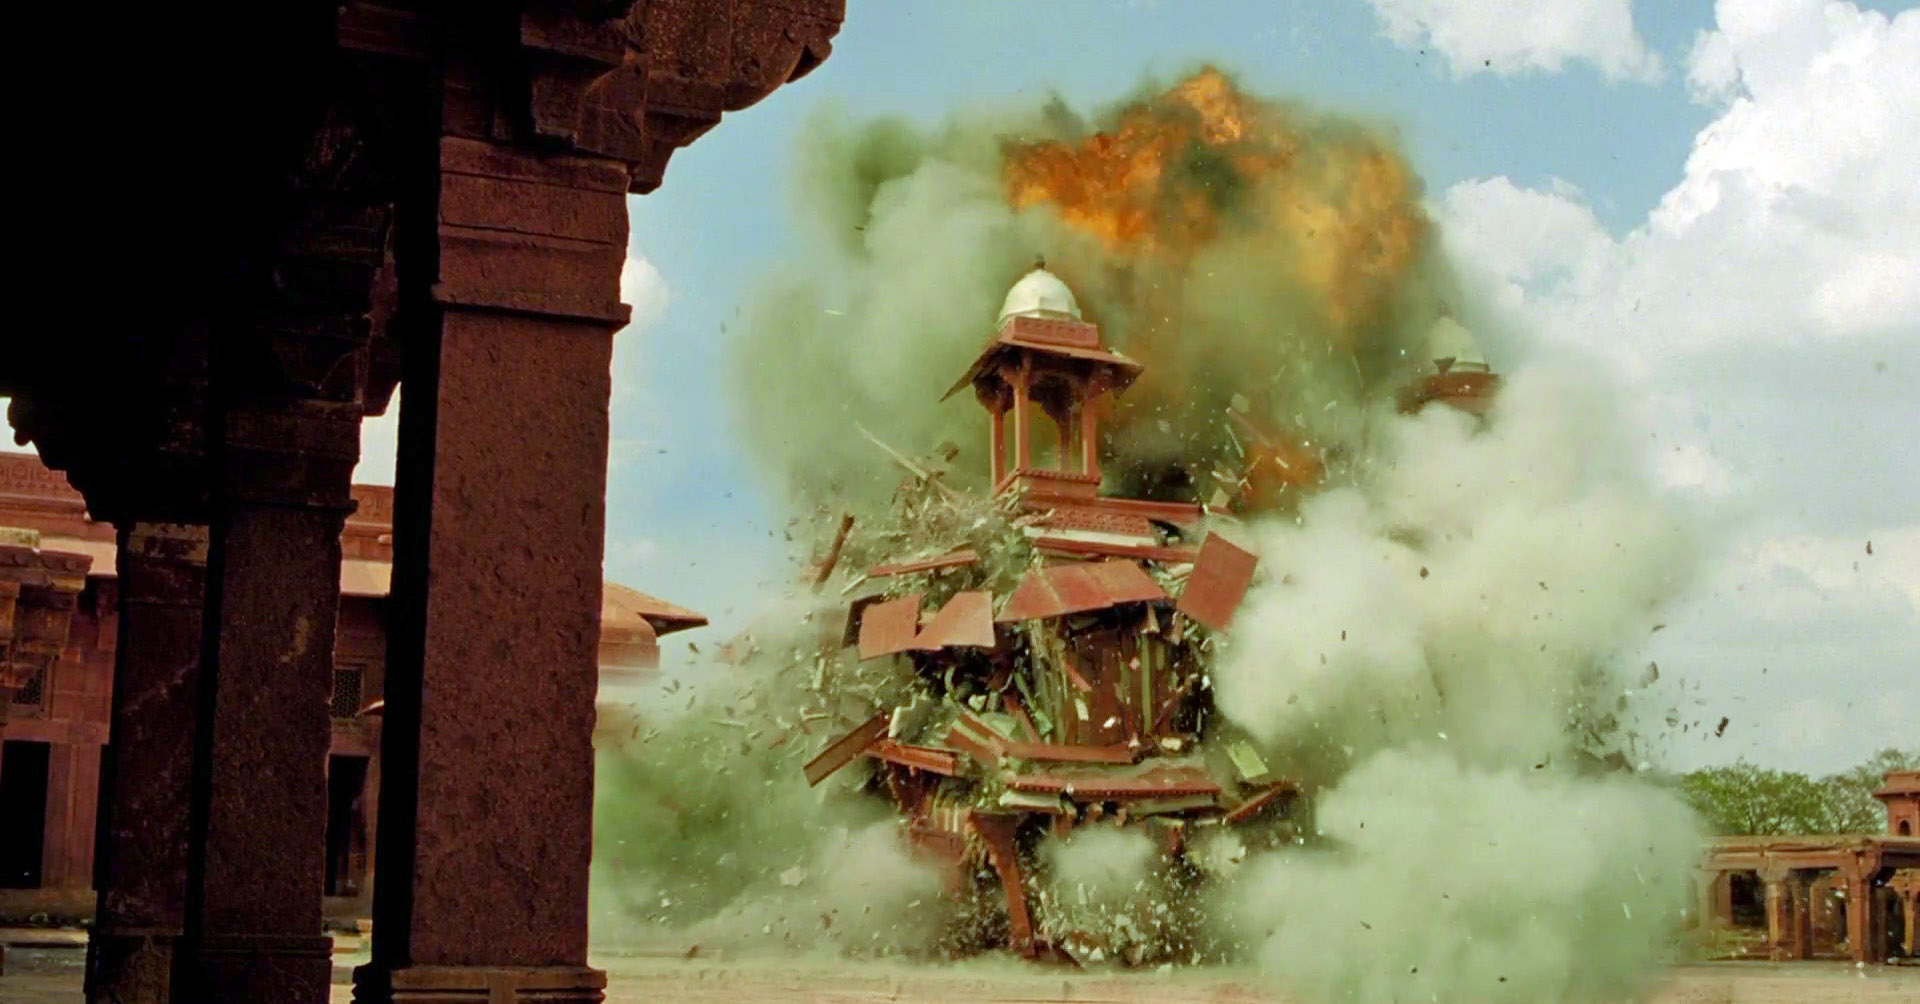 Miniature Explosion from 'The Fall'